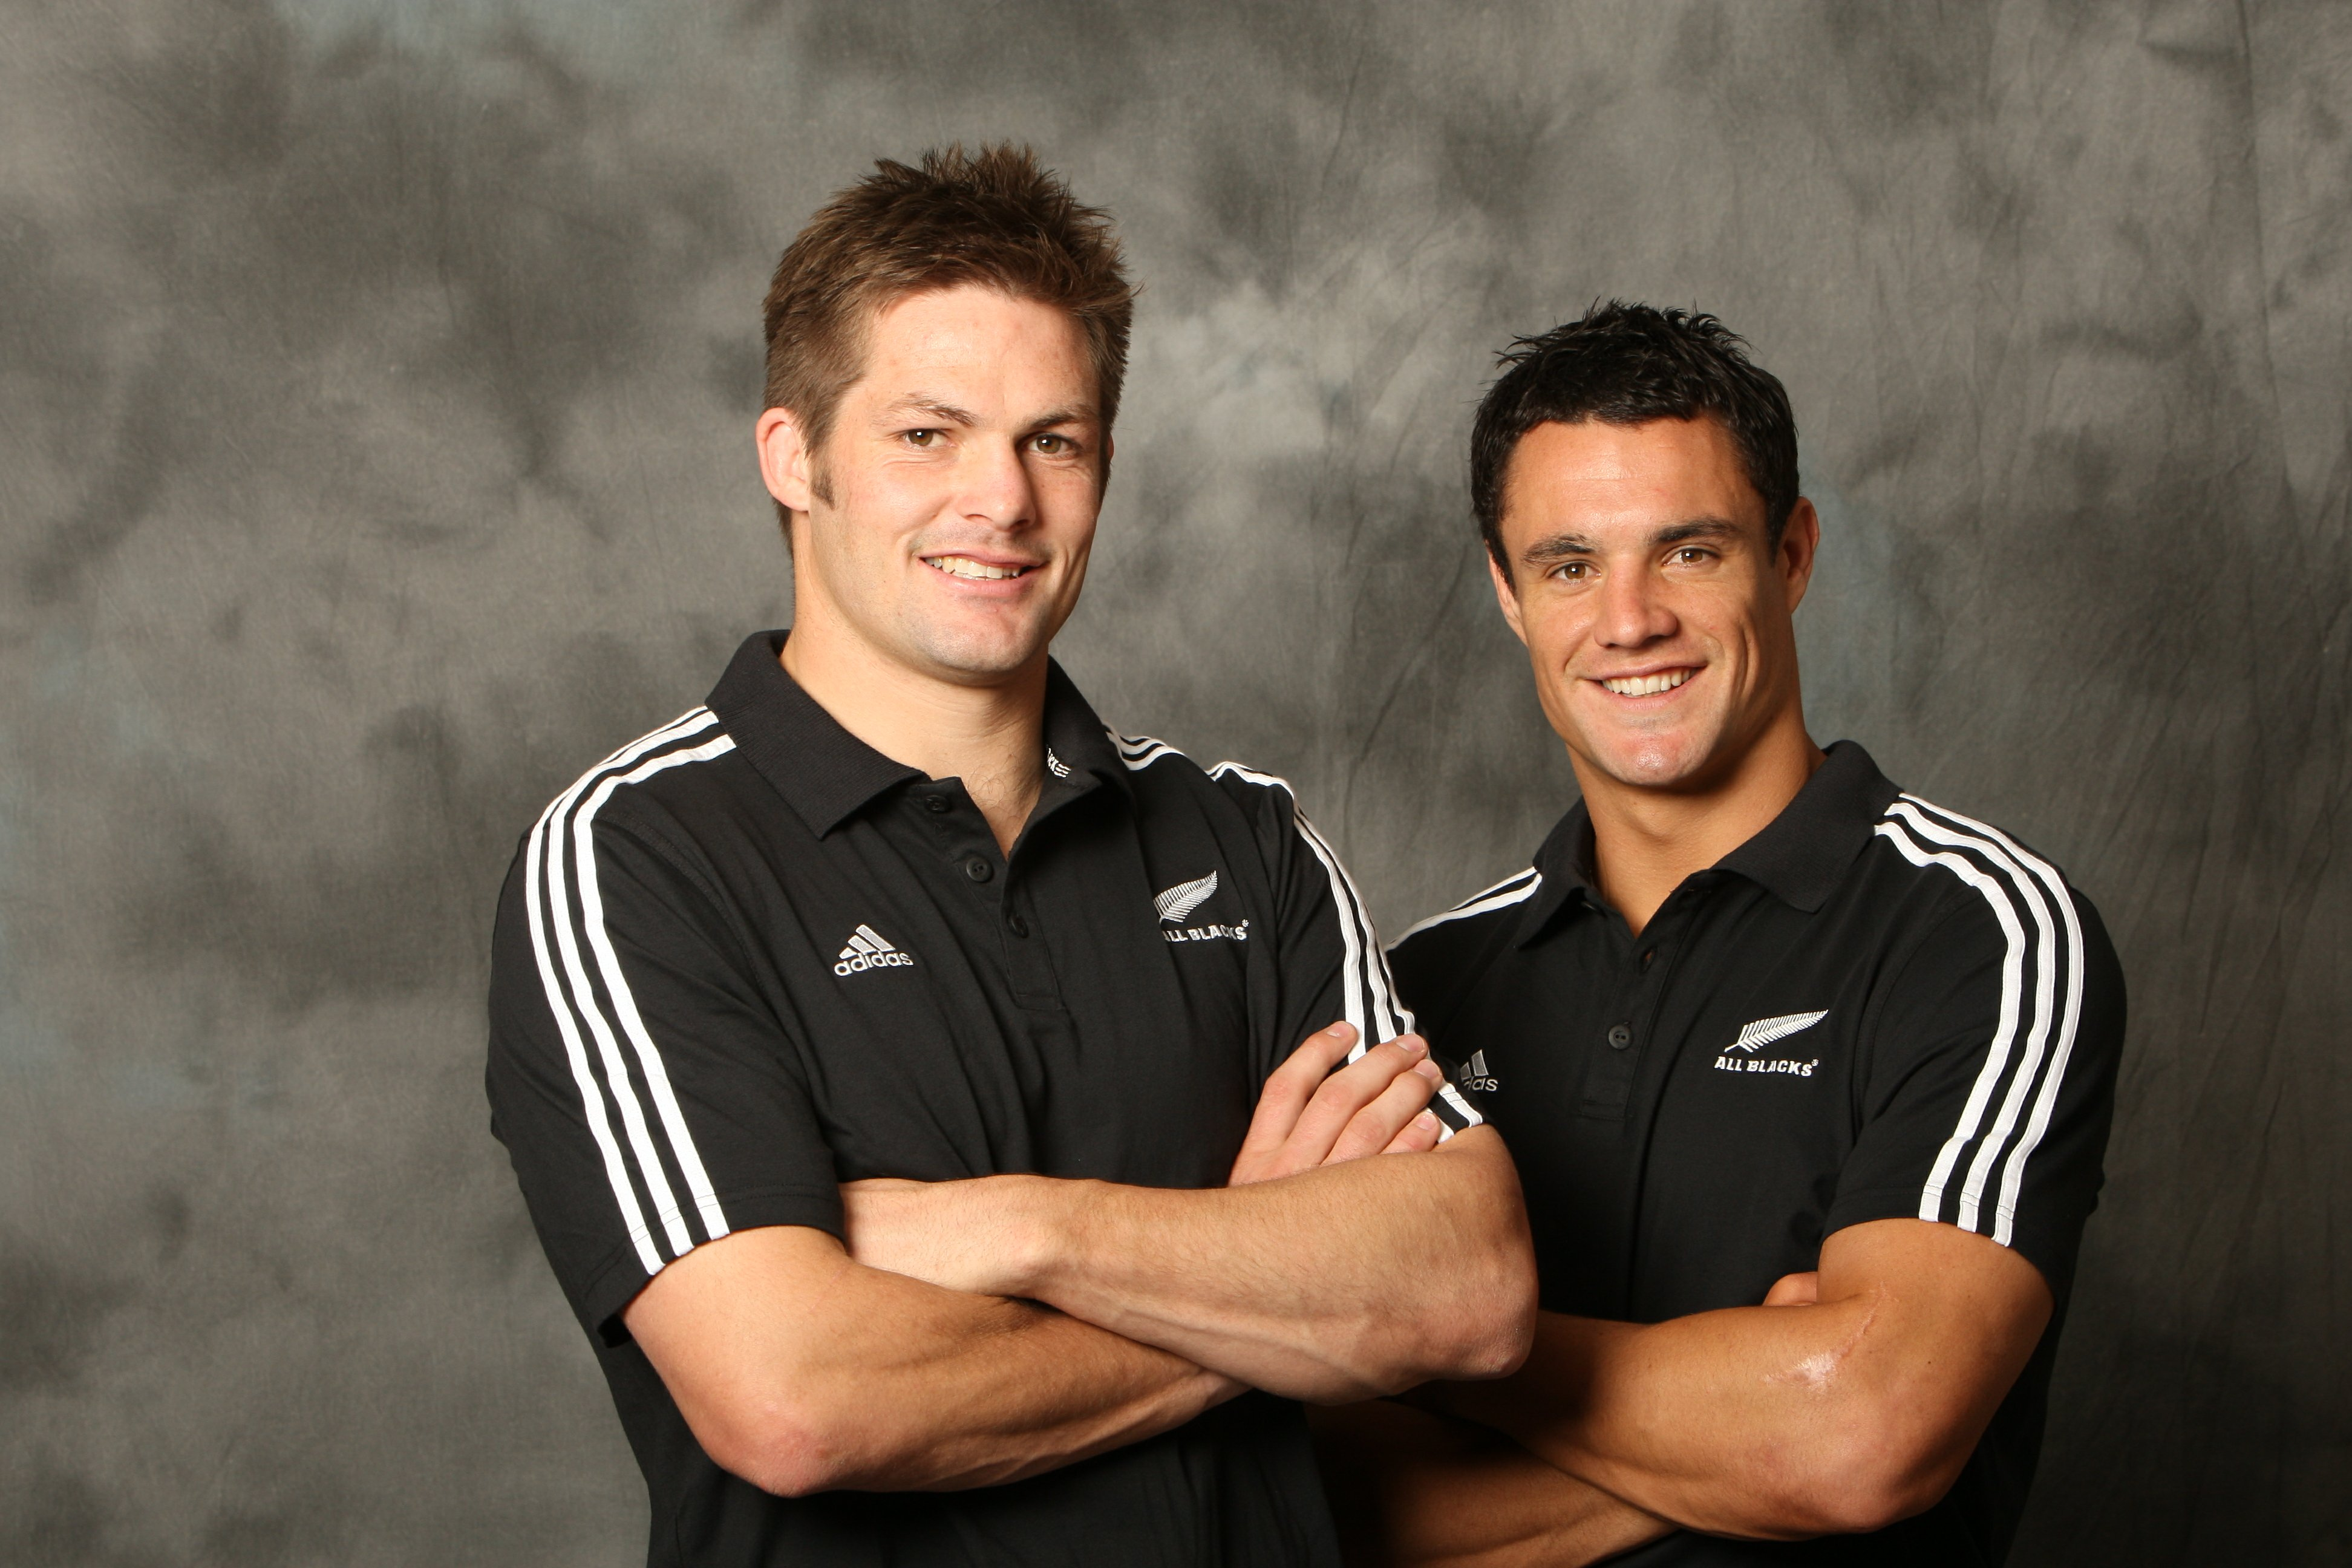 http://sudrugby.files.wordpress.com/2009/11/richie-mccaw-and-dan-carter1.jpg